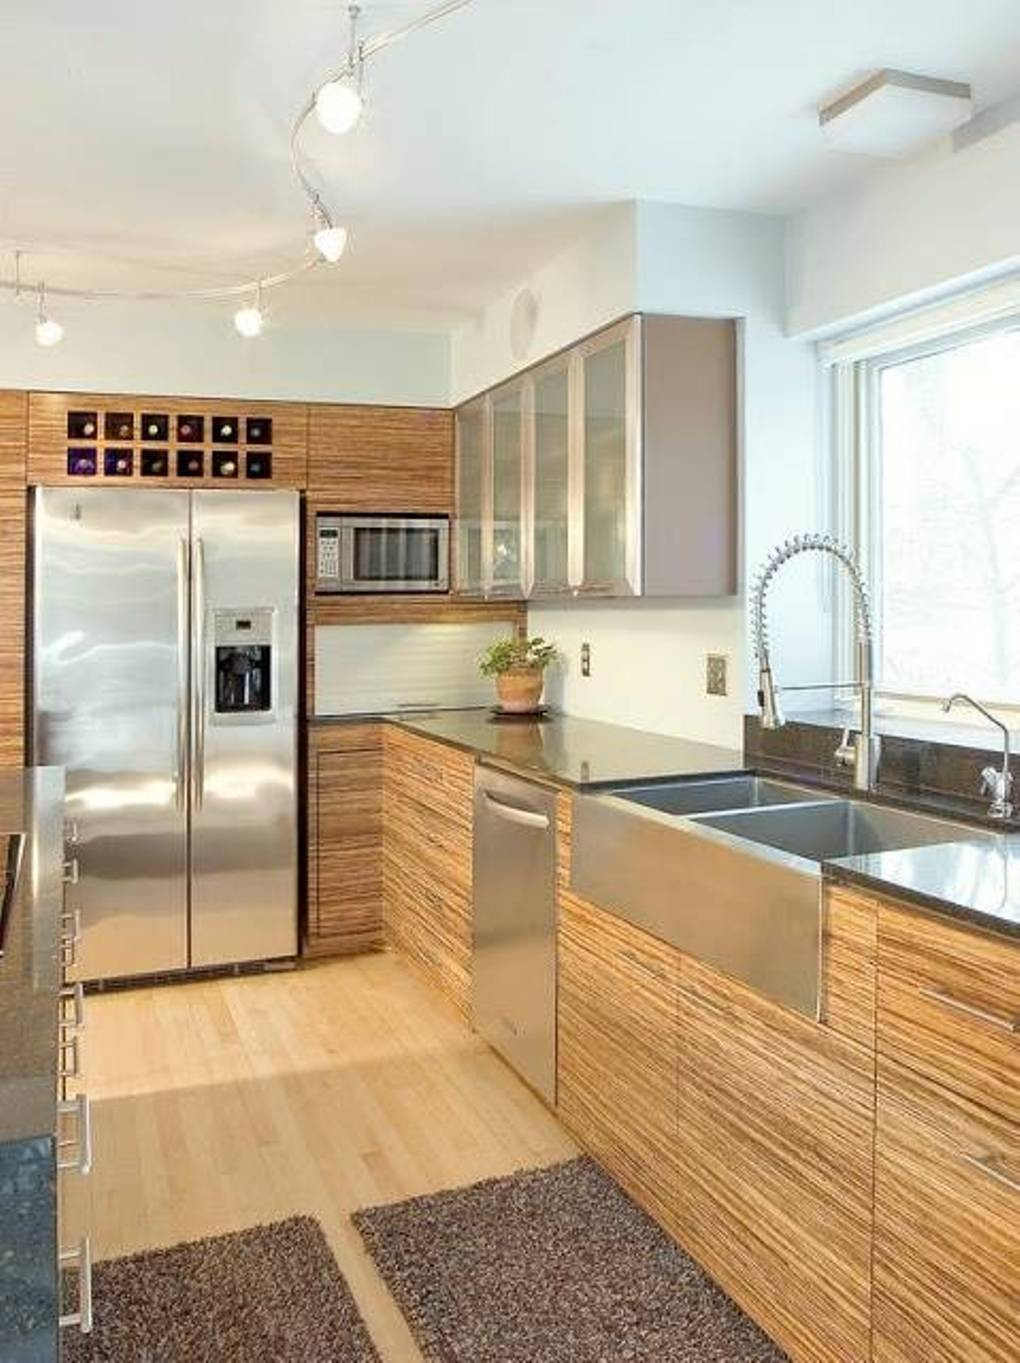 Best ideas about Ceiling Lights For Kitchen . Save or Pin Kitchen Ceiling Lights Ideas to Enlighten Cooking Times Now.